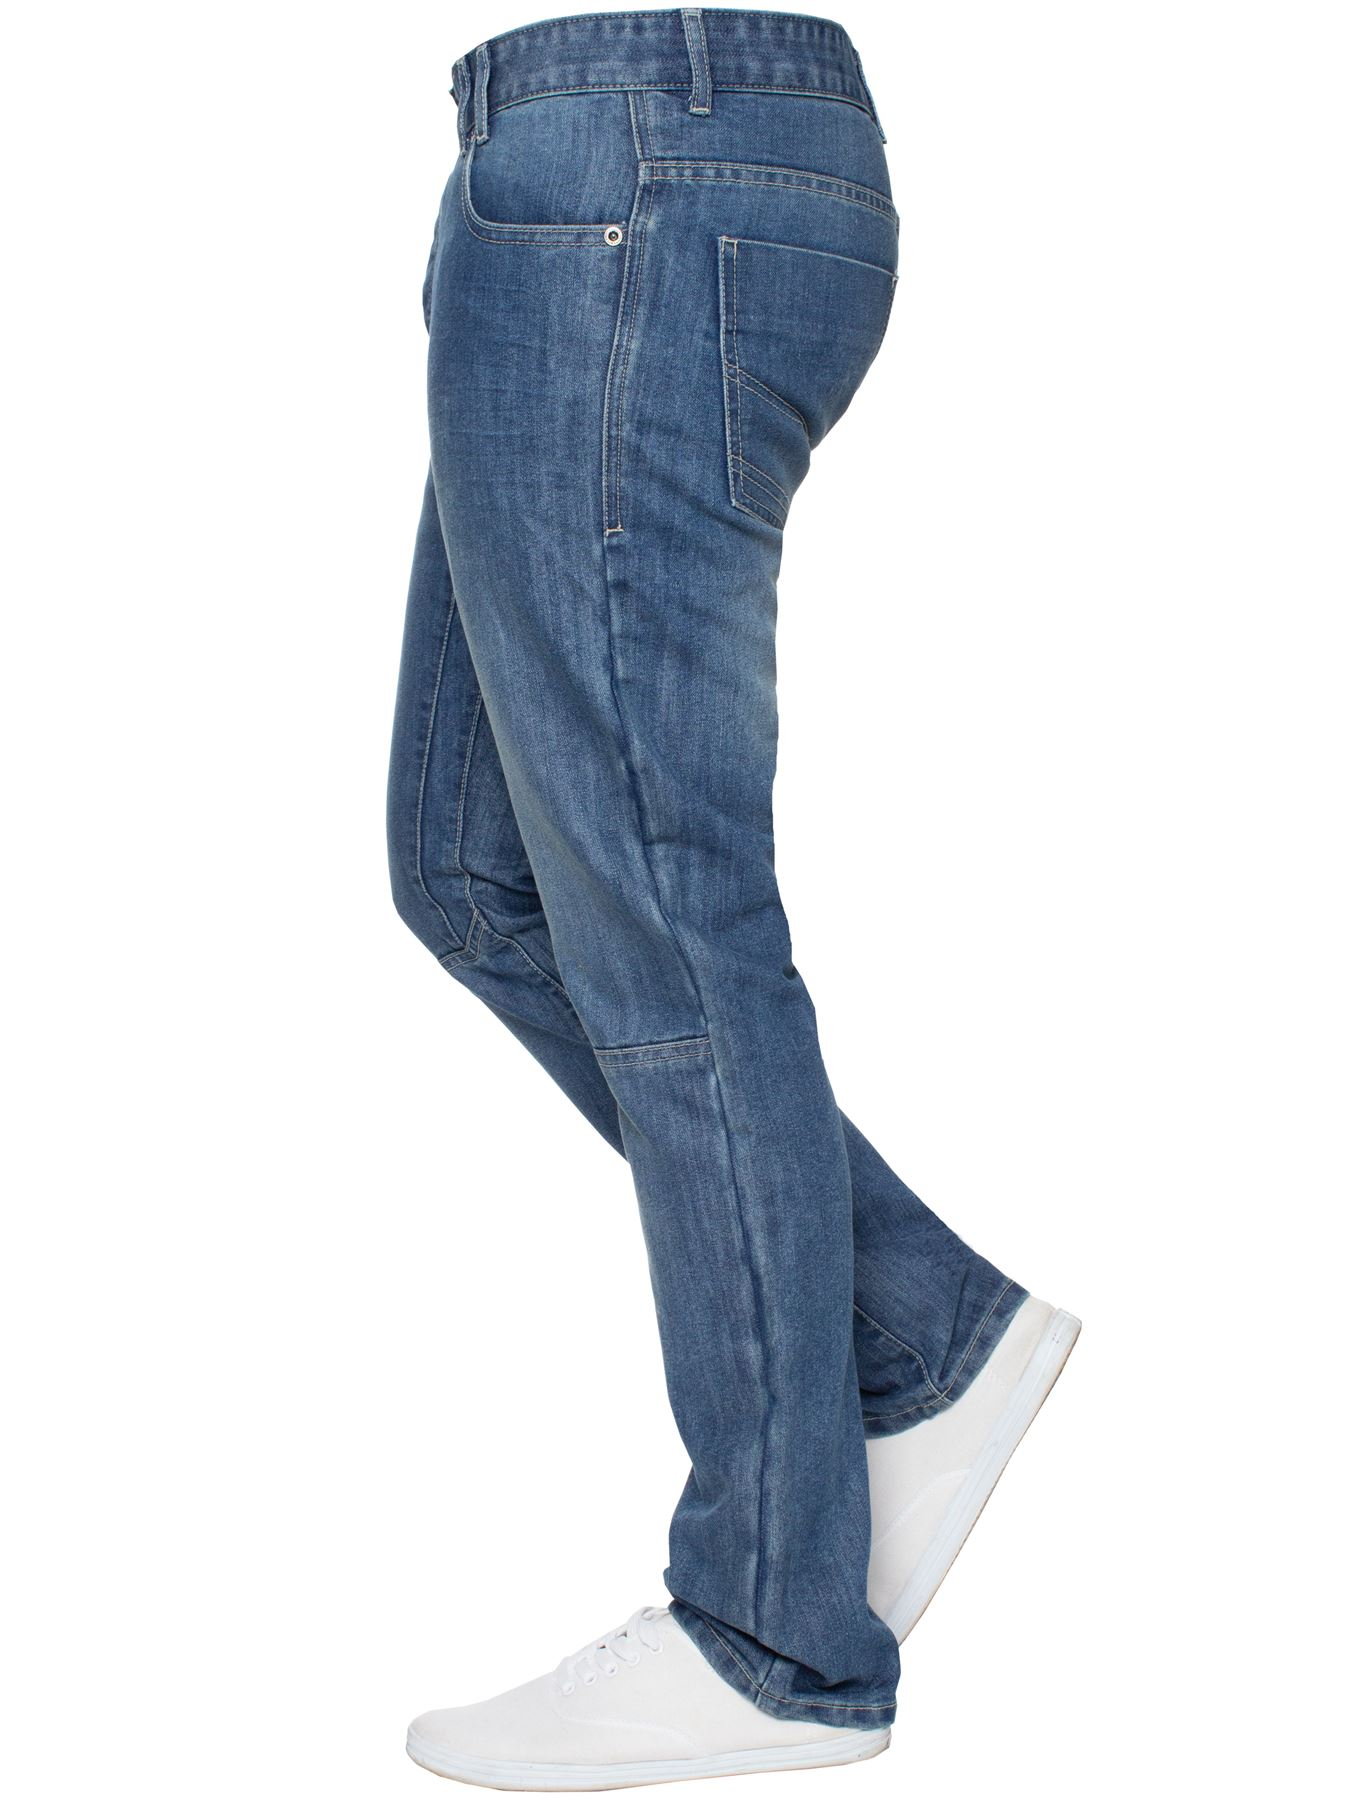 Enzo-Mens-Straight-Jeans-Regular-Leg-Designer-Work-Denim-Pants-All-Waists-Sizes thumbnail 25